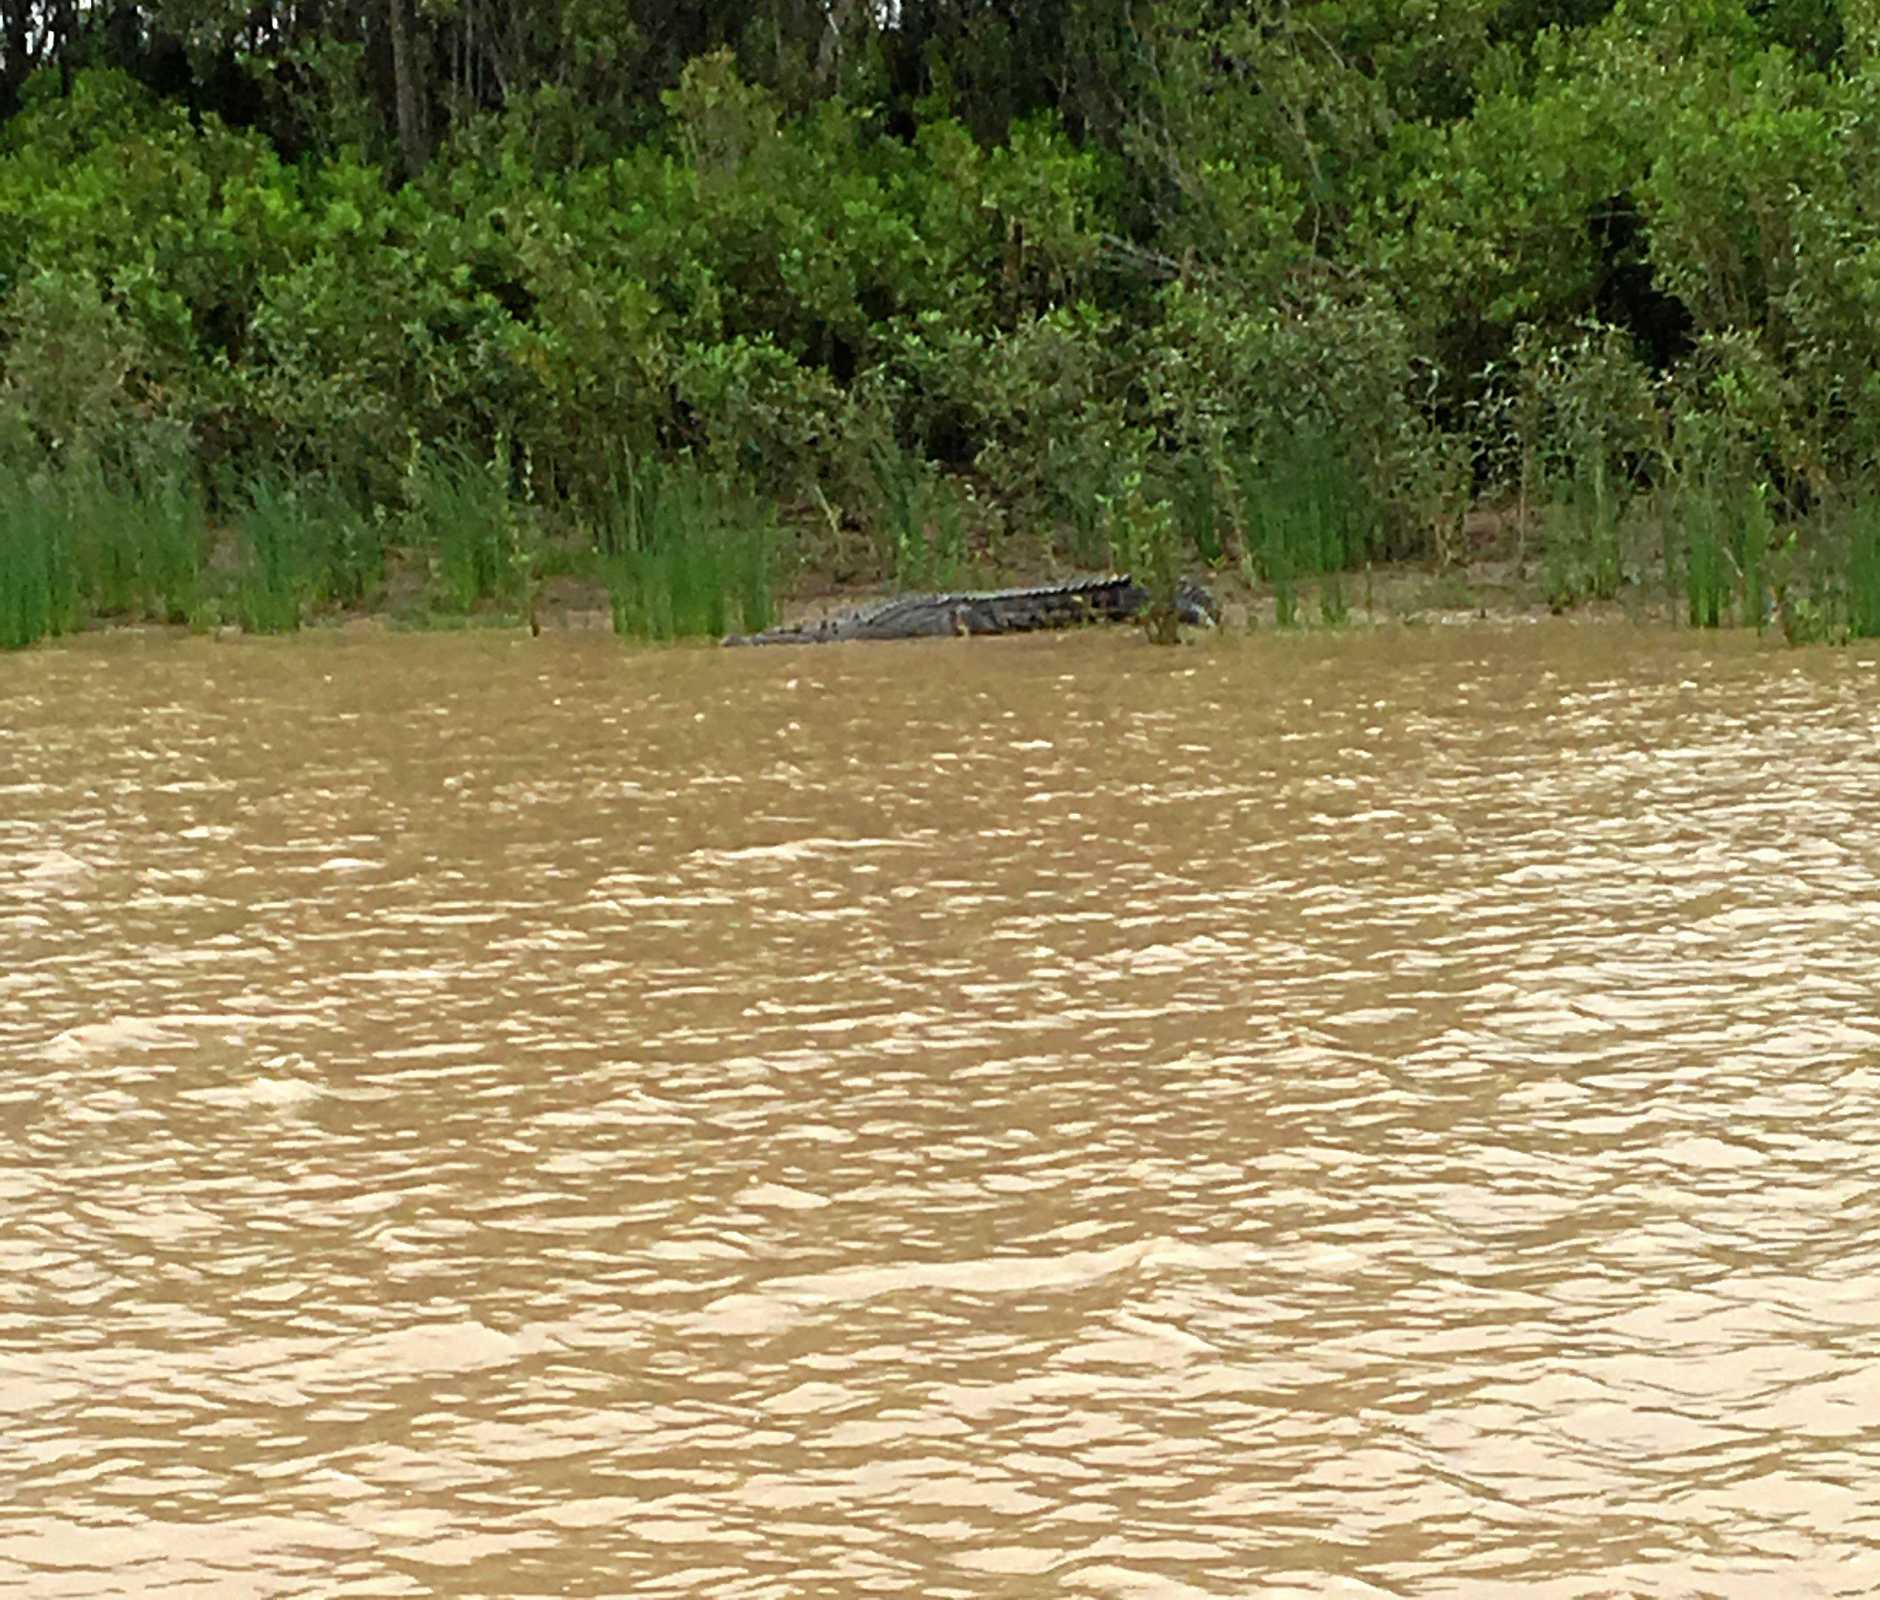 BIG FELLA: Emily Briggs was fishing on the Fitzroy River, just 1km from the Quay St boat ramp, when she spotted this crocodile.